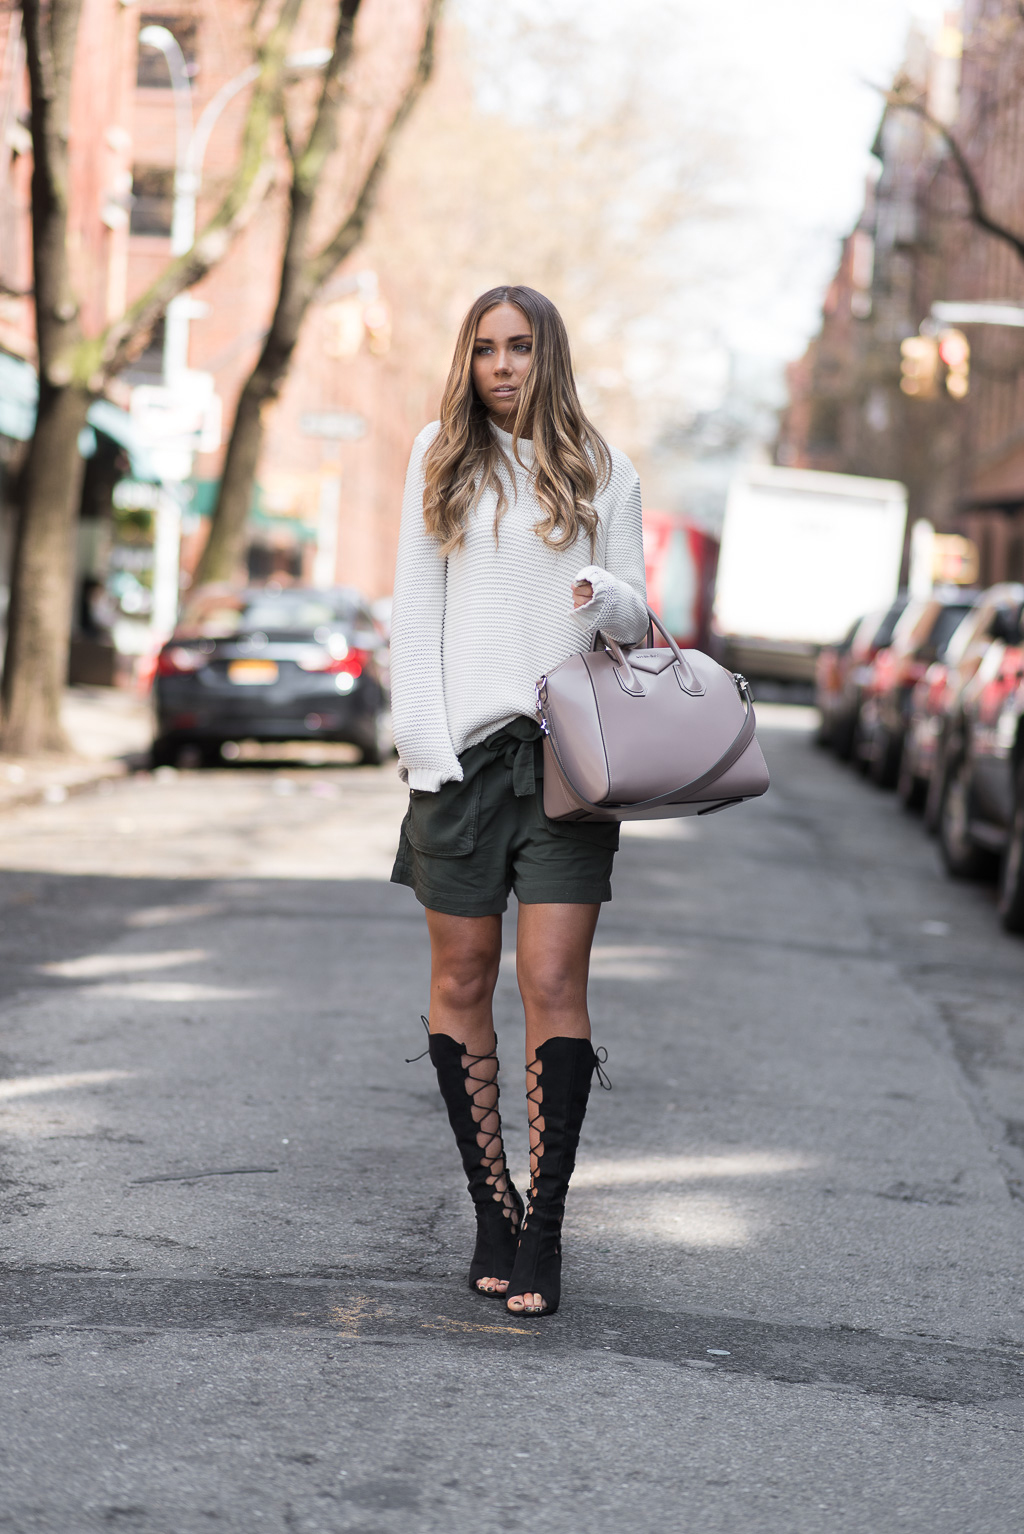 Just The Design: Lisa Olsson is wearing a pair of khaki green Gina Tricot shorts paired with a white Bascoto sweater, a Givenchy handbag and black lace up Nelly heels